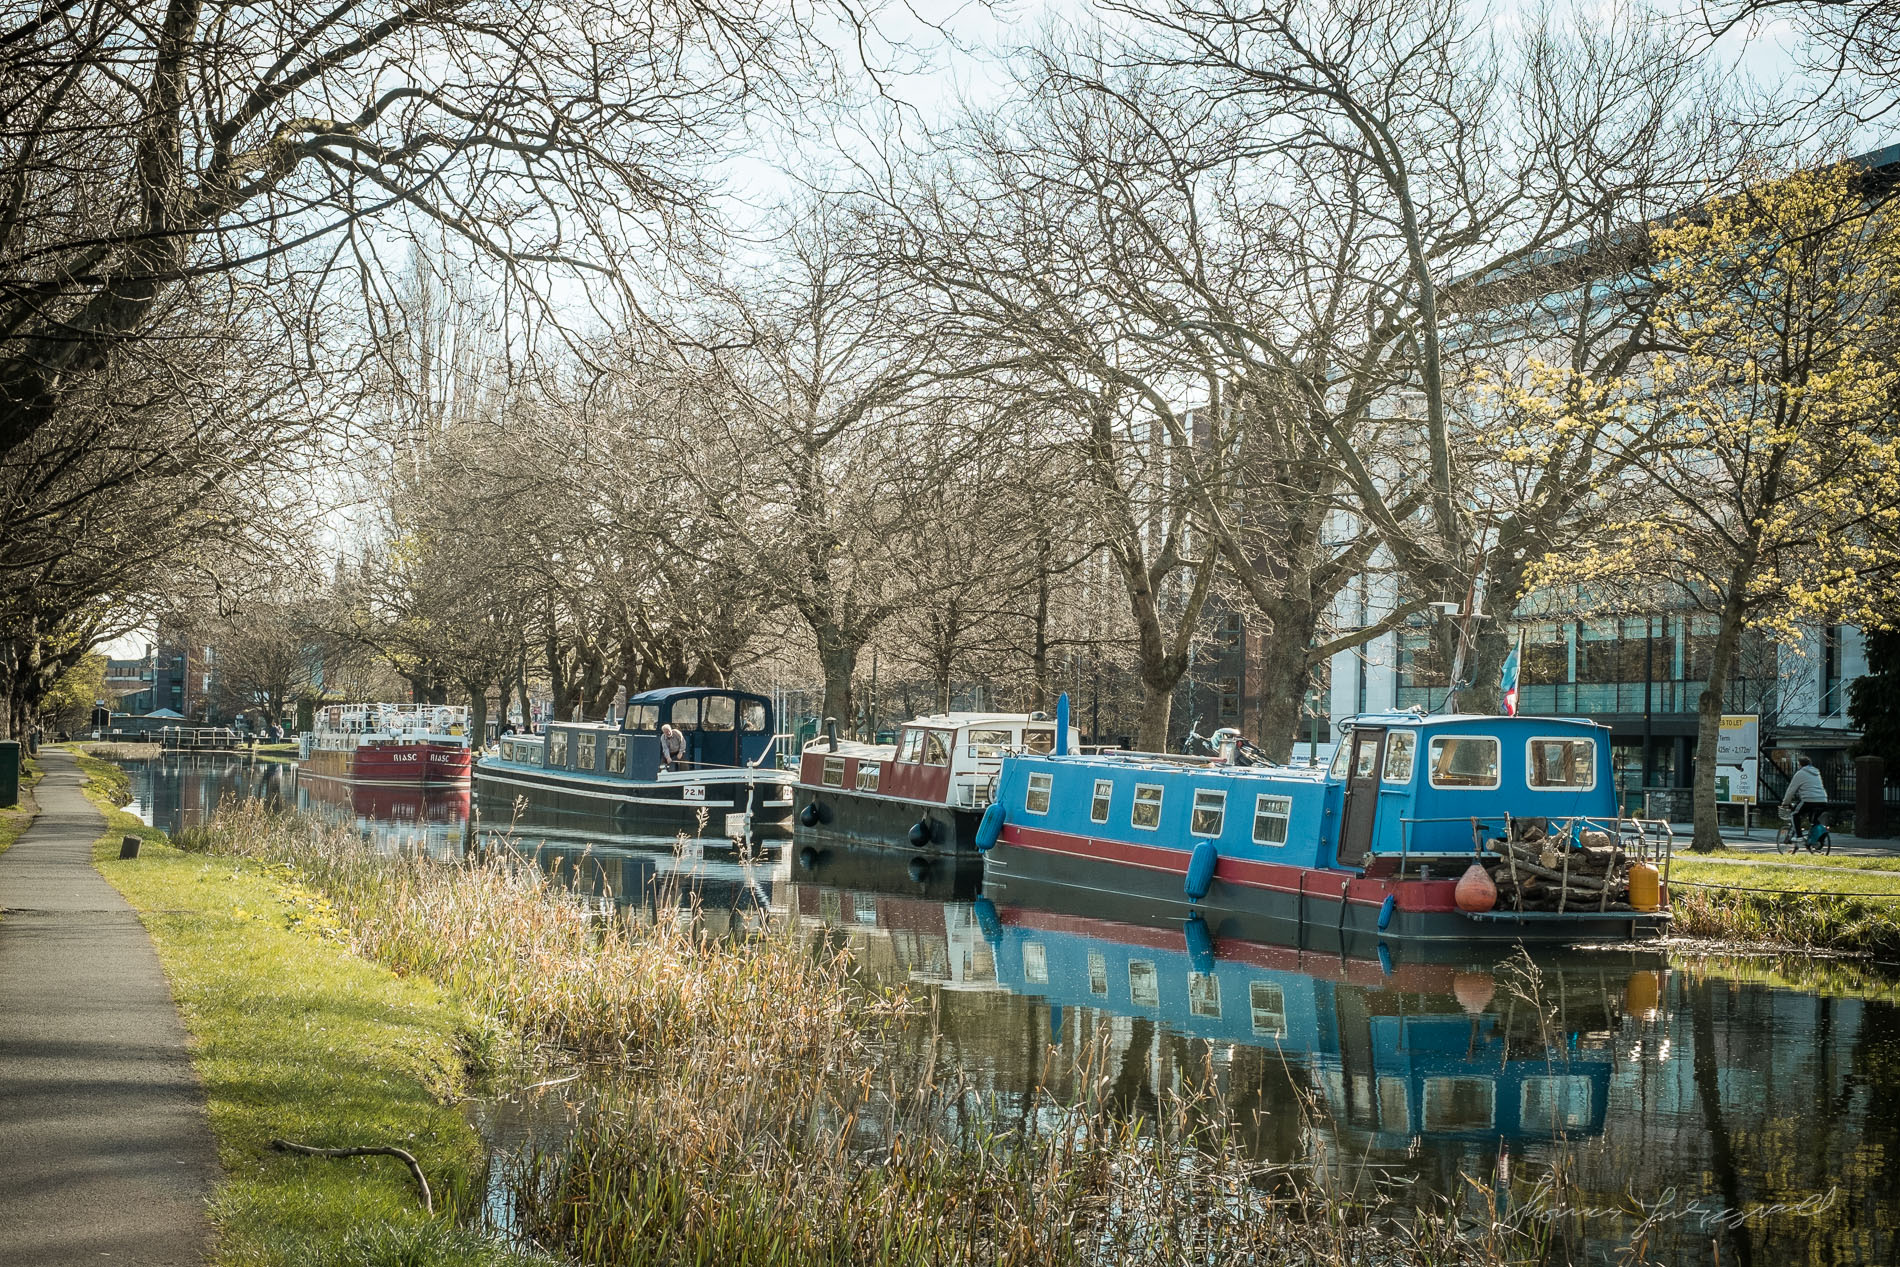 Barges on the Canal - Fuji XE-1